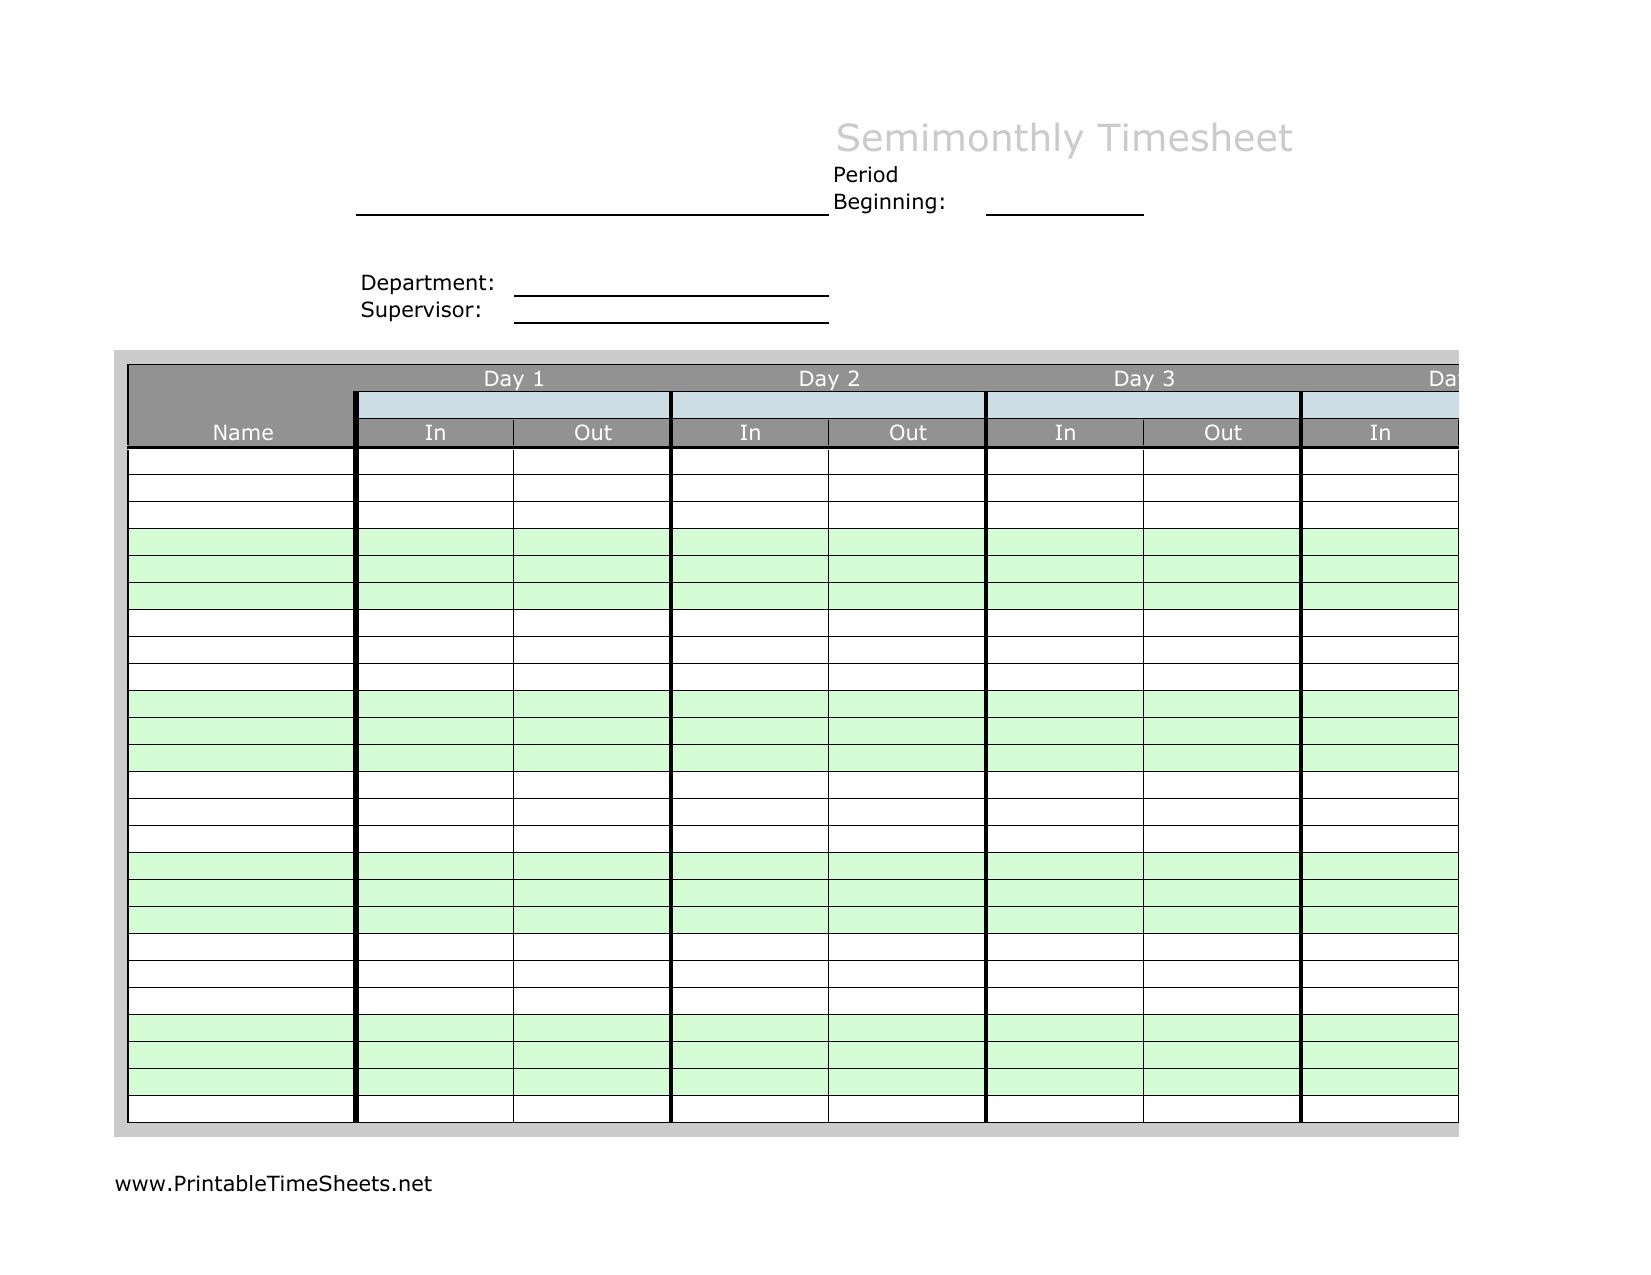 Download Semi Month Timesheet Template